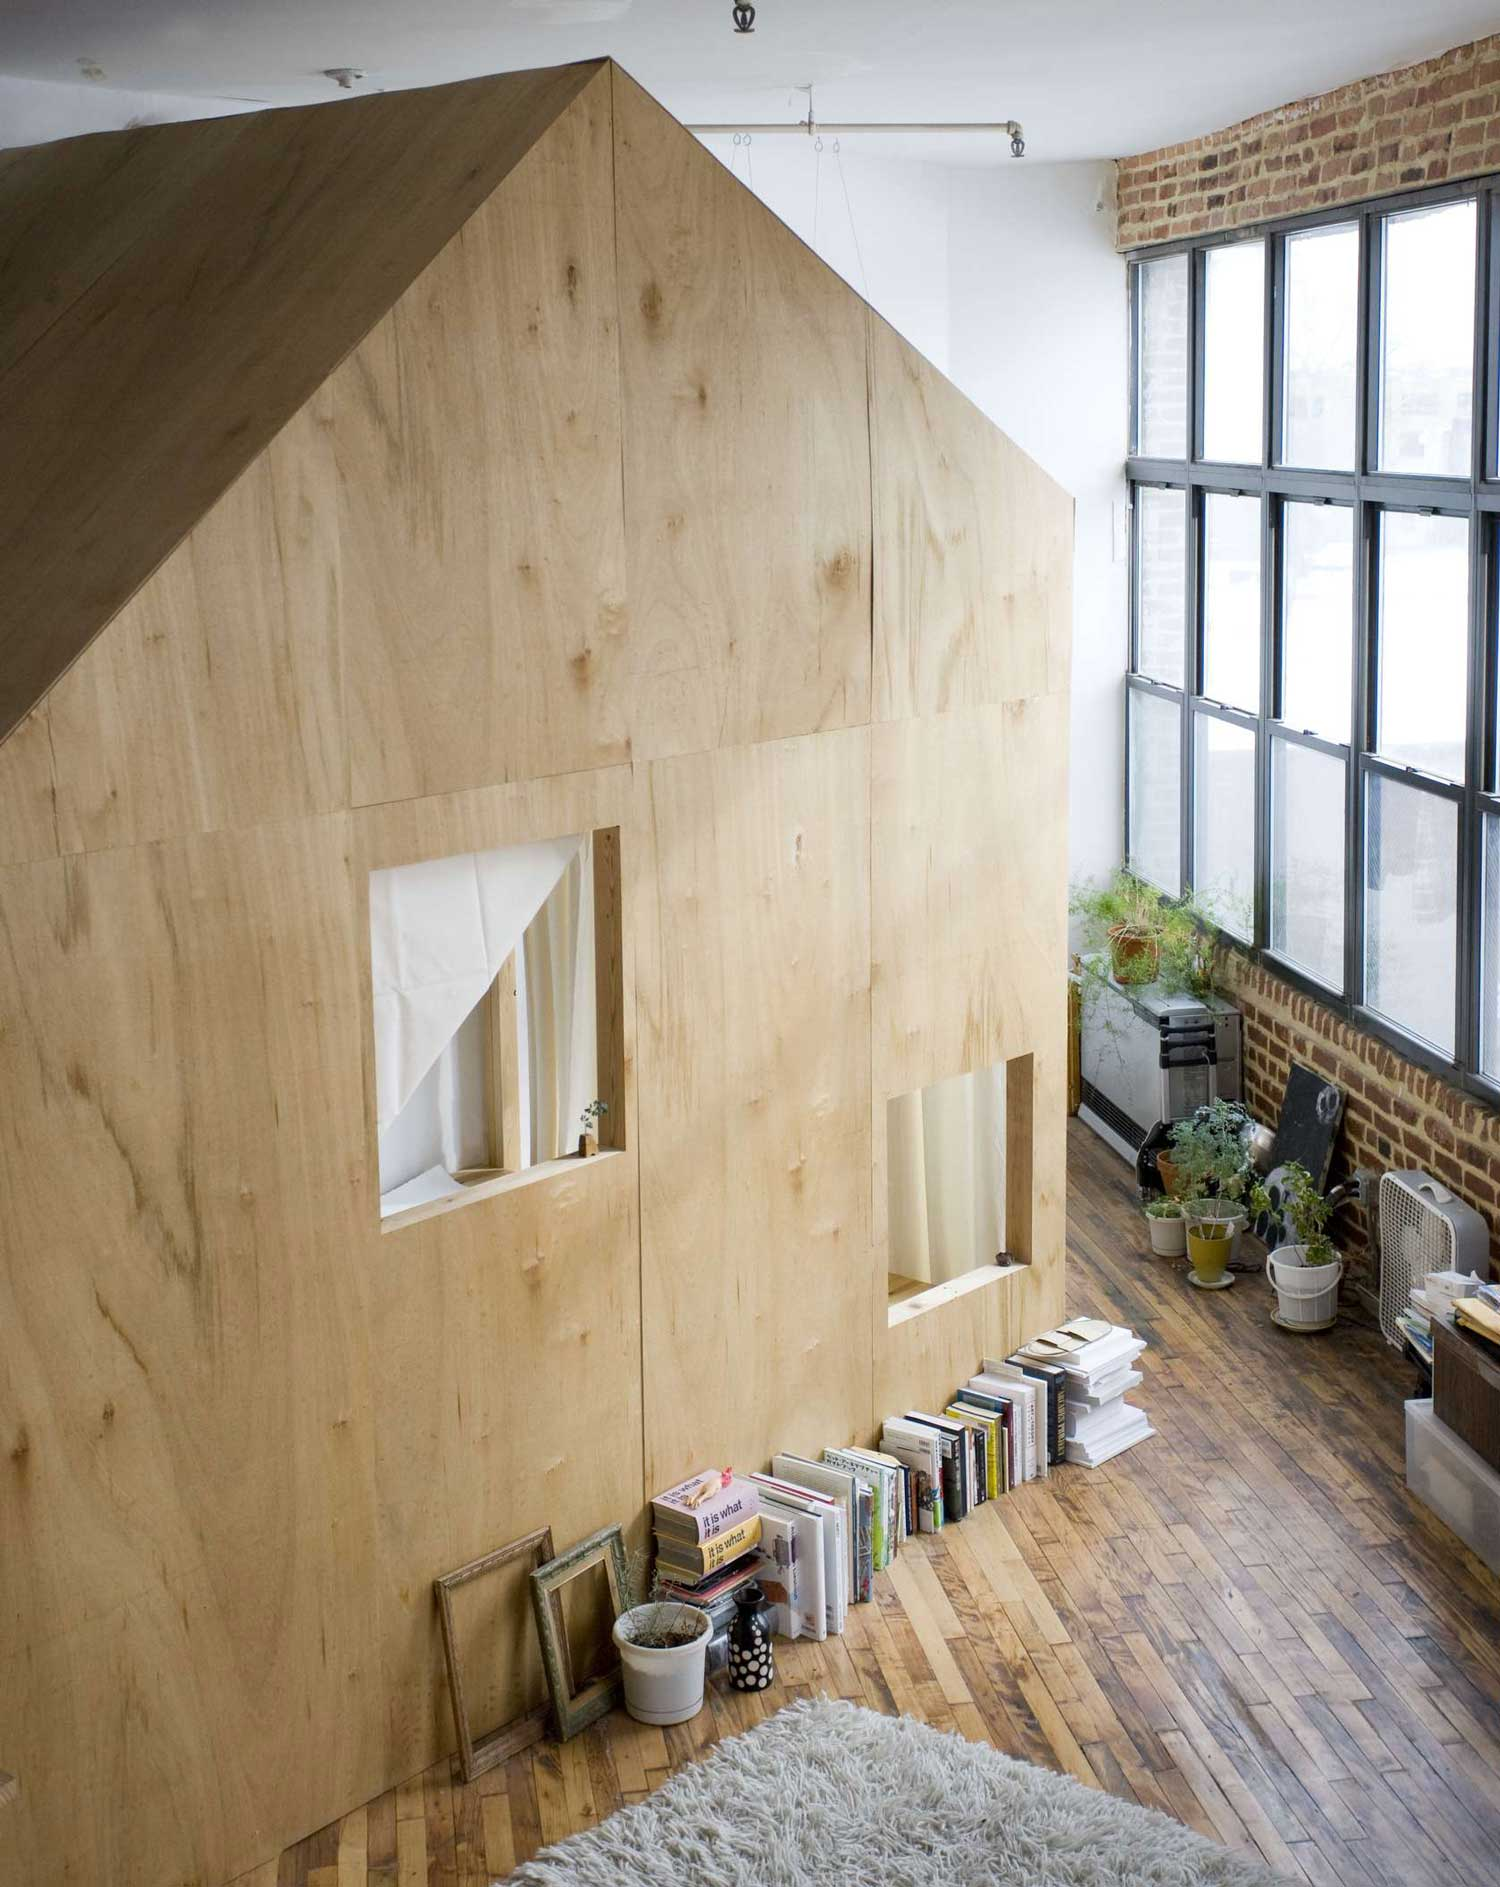 A Cabin in a Loft by Terri Chiao & Adam Frezzo | Yellowtrace